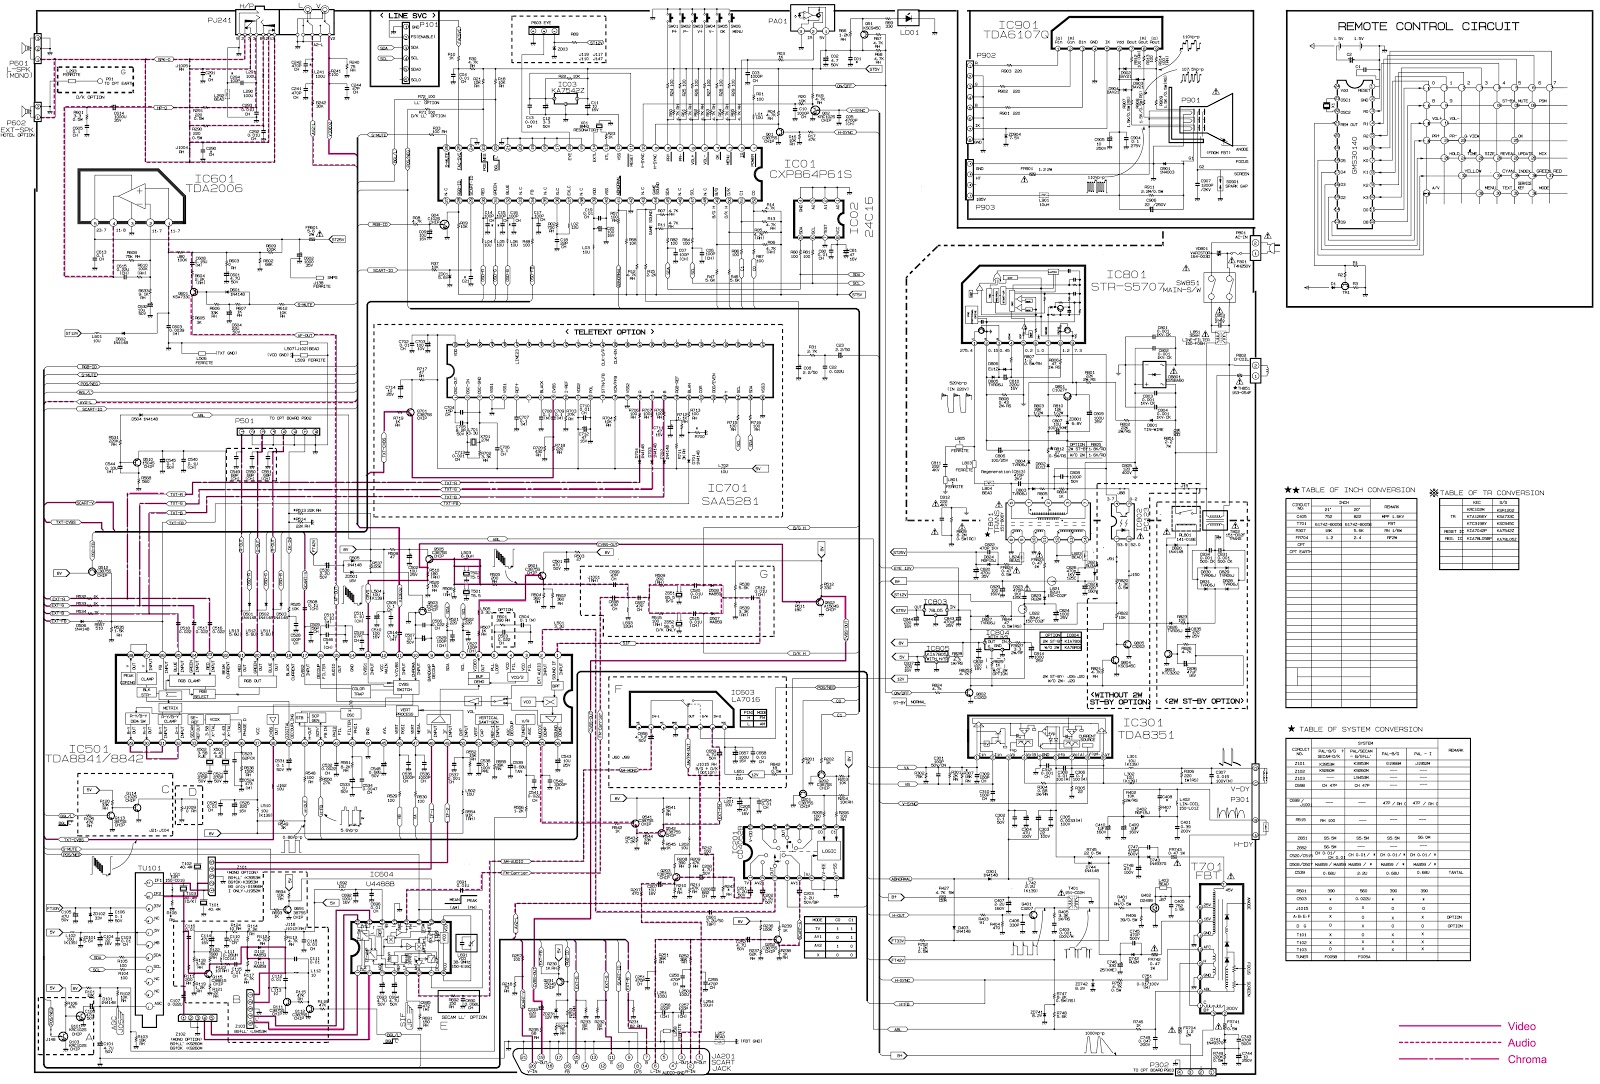 SCHEMATIC%2BLG20T lg cb20t20x crt tv schematic schematic diagrams samsung led tv wiring diagram at bakdesigns.co